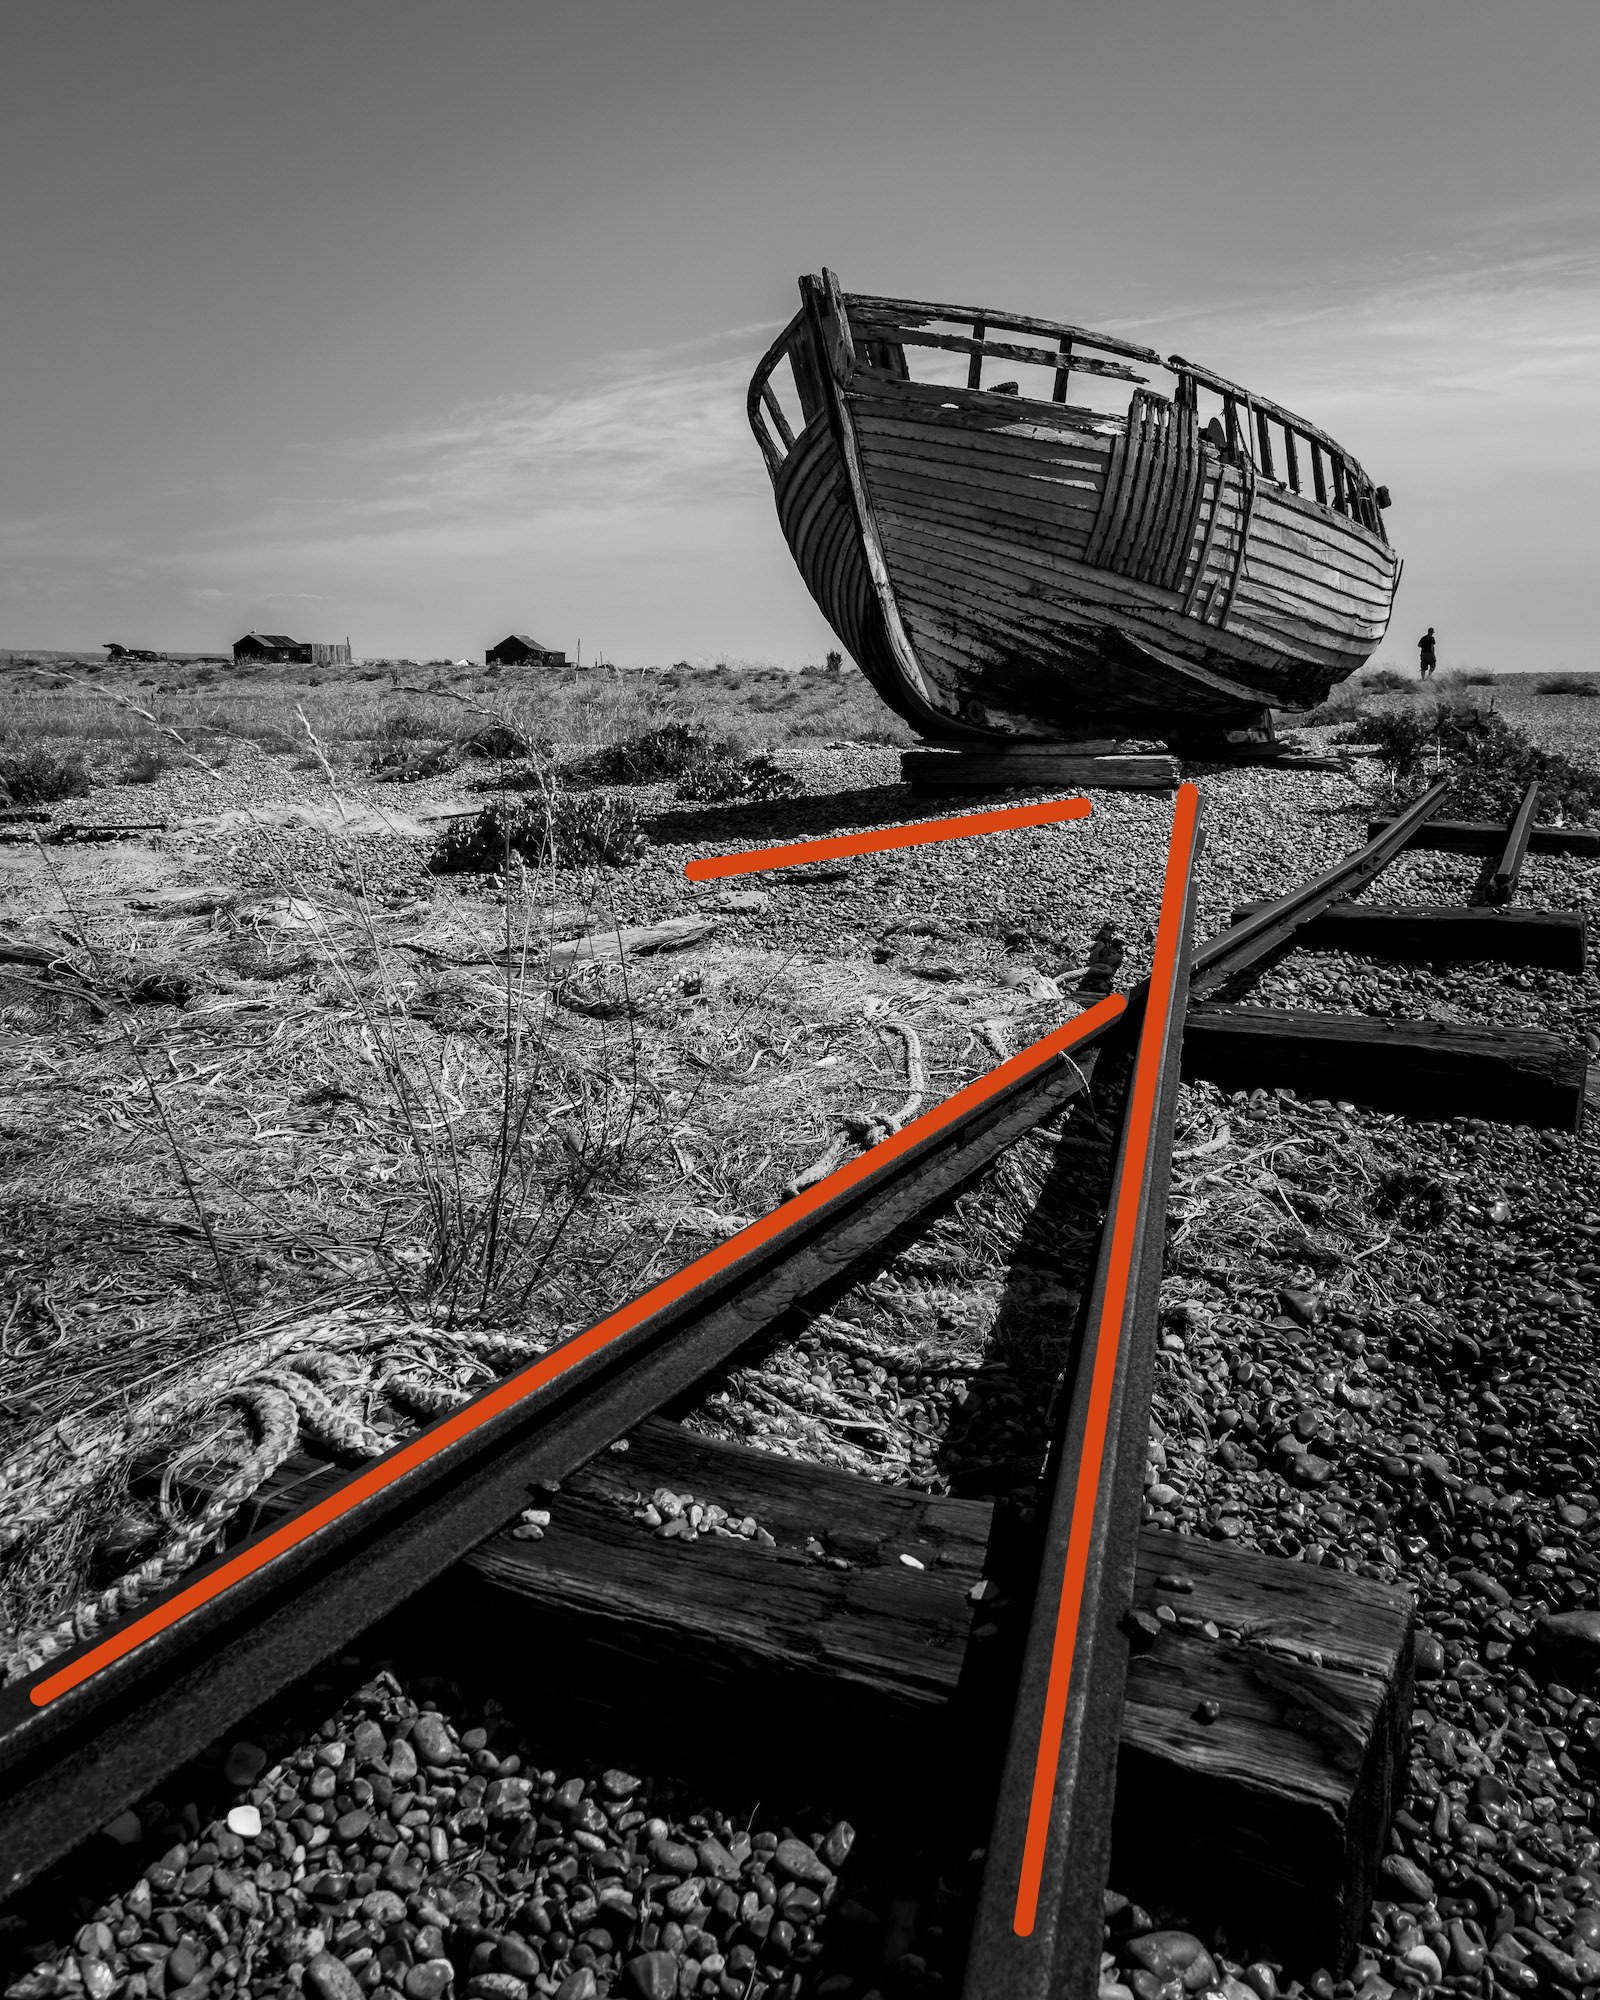 One of the many fishing boats left to rot on the beaches at Dungeness, with added leading lines to show compositional technique